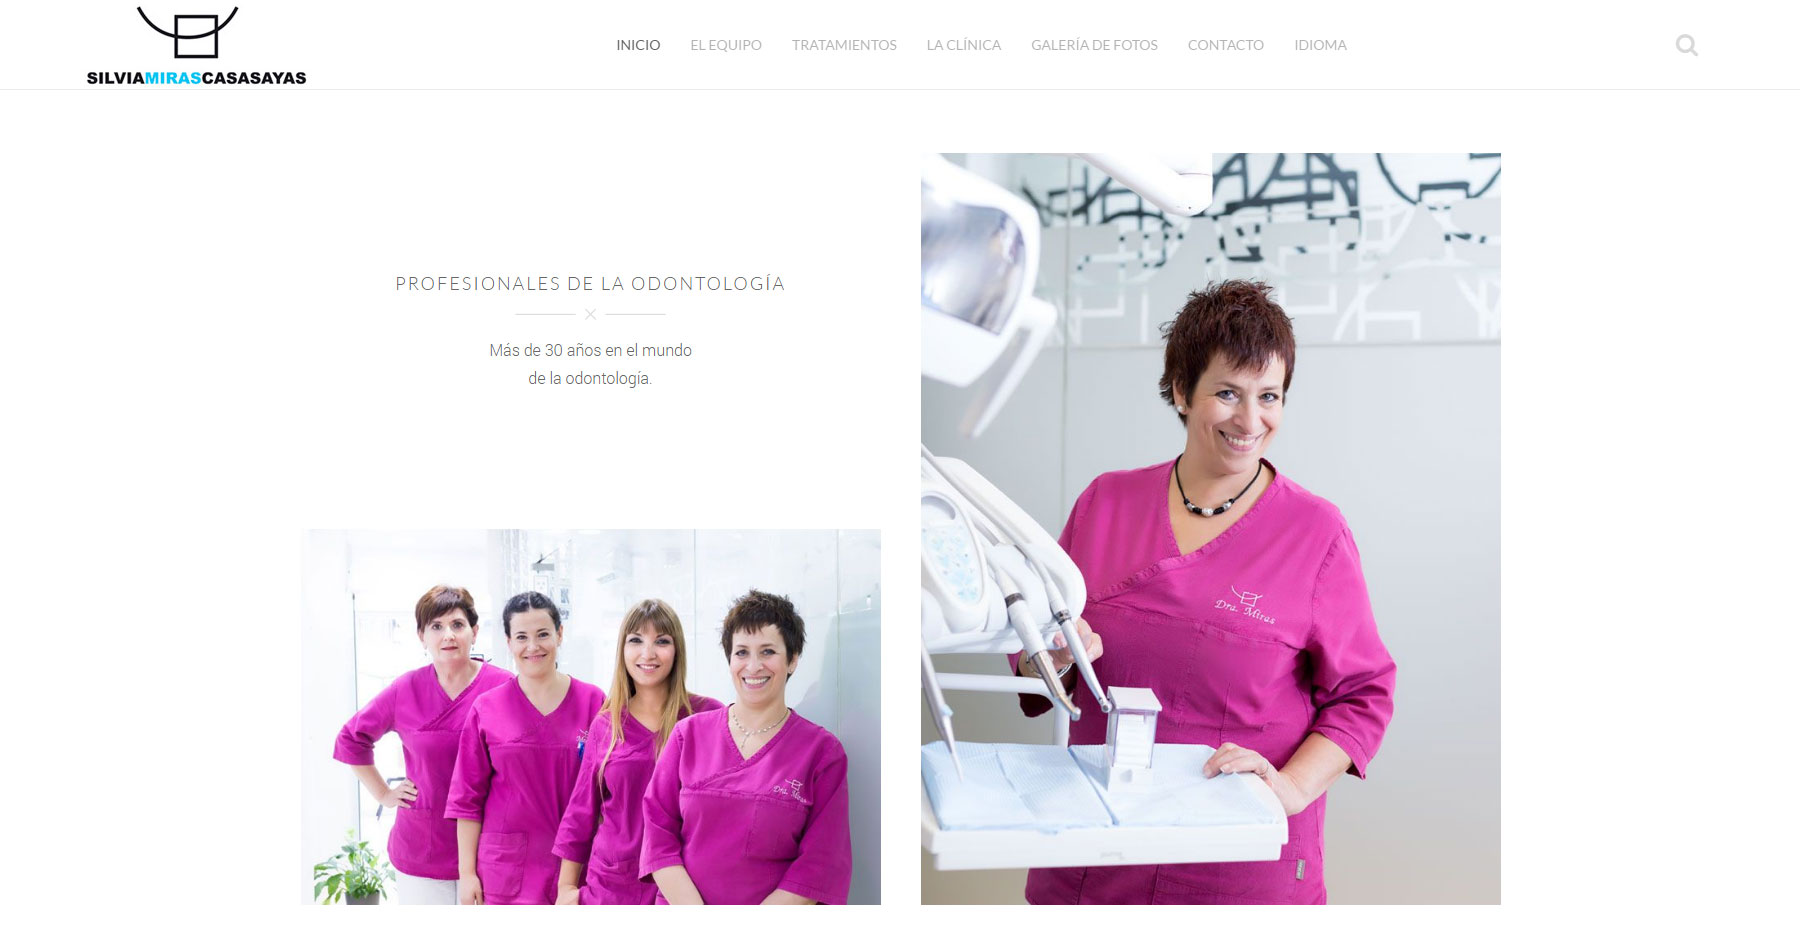 Dental Clinic Silvia M. Casasayas - Website of the Day